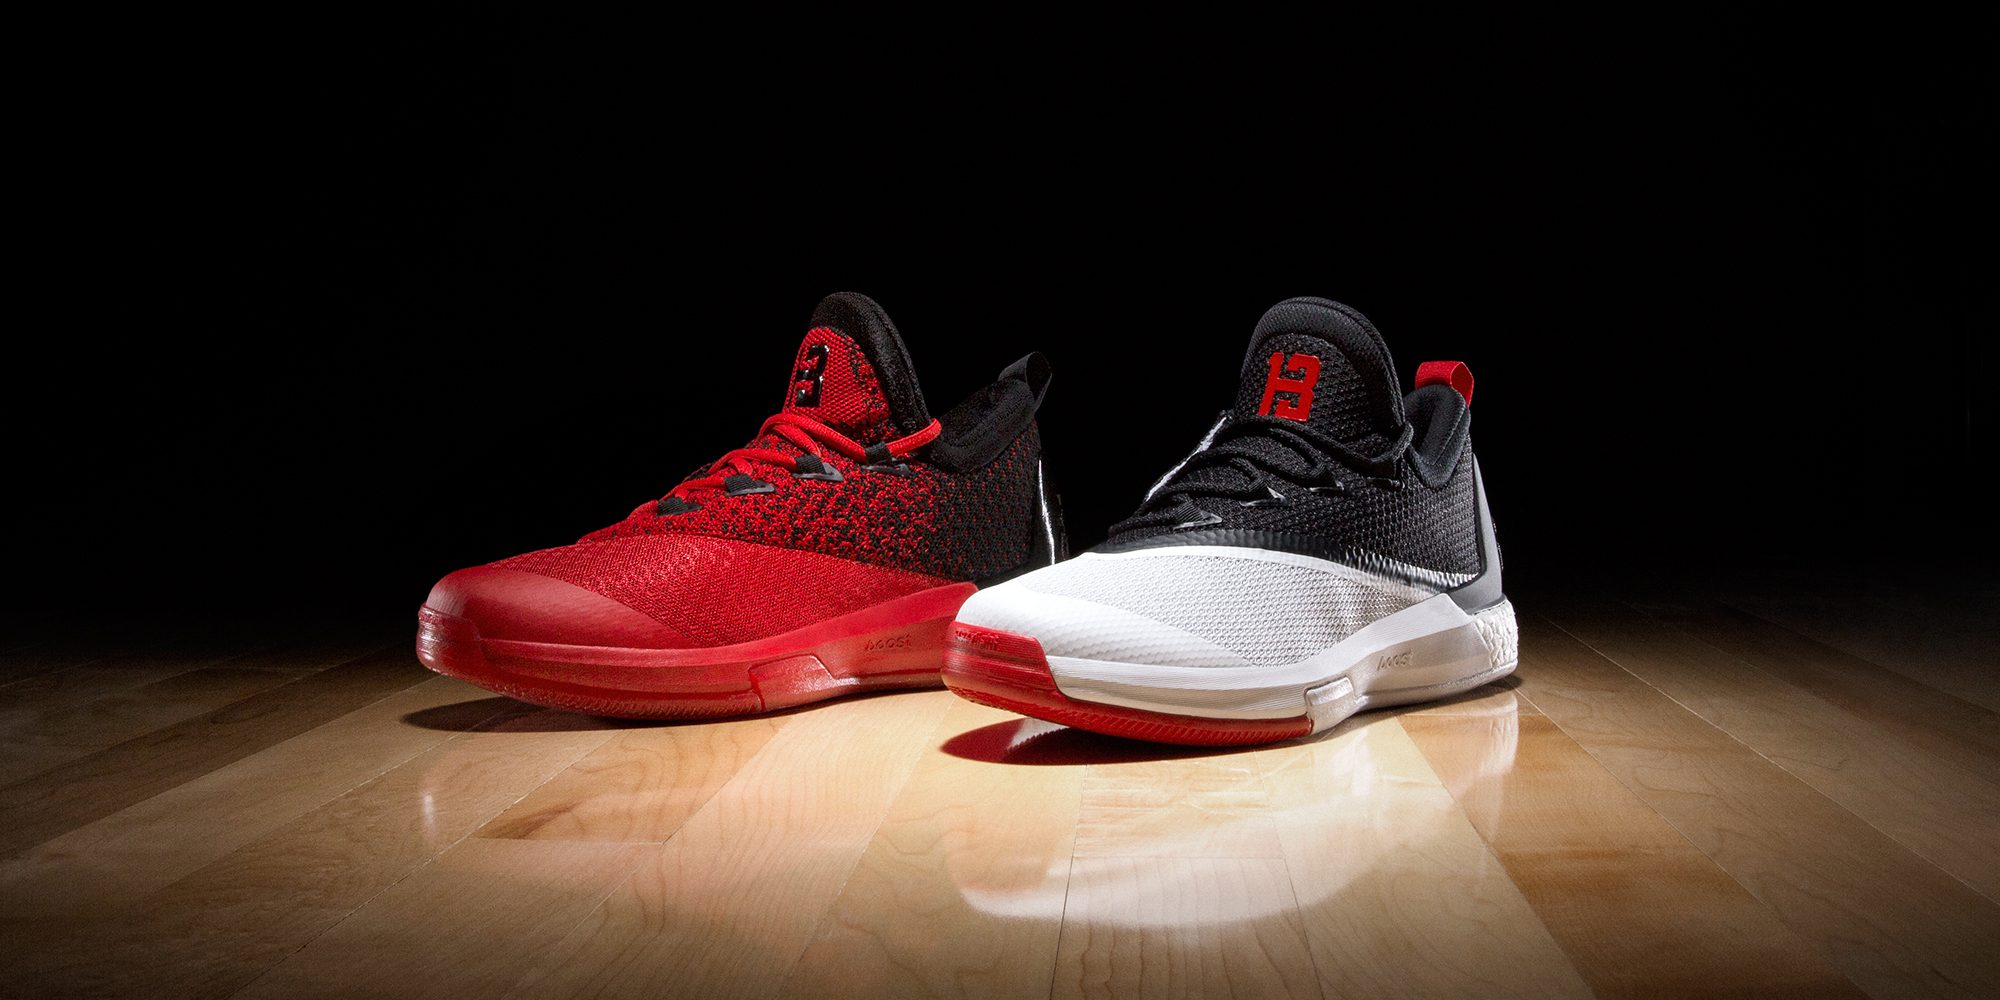 sports shoes 62385 03858 australia adidas harden red pink 59344 9bce4  official store adidas and  james harden reveal home and road crazylight boost 2.5 pes hardwood and